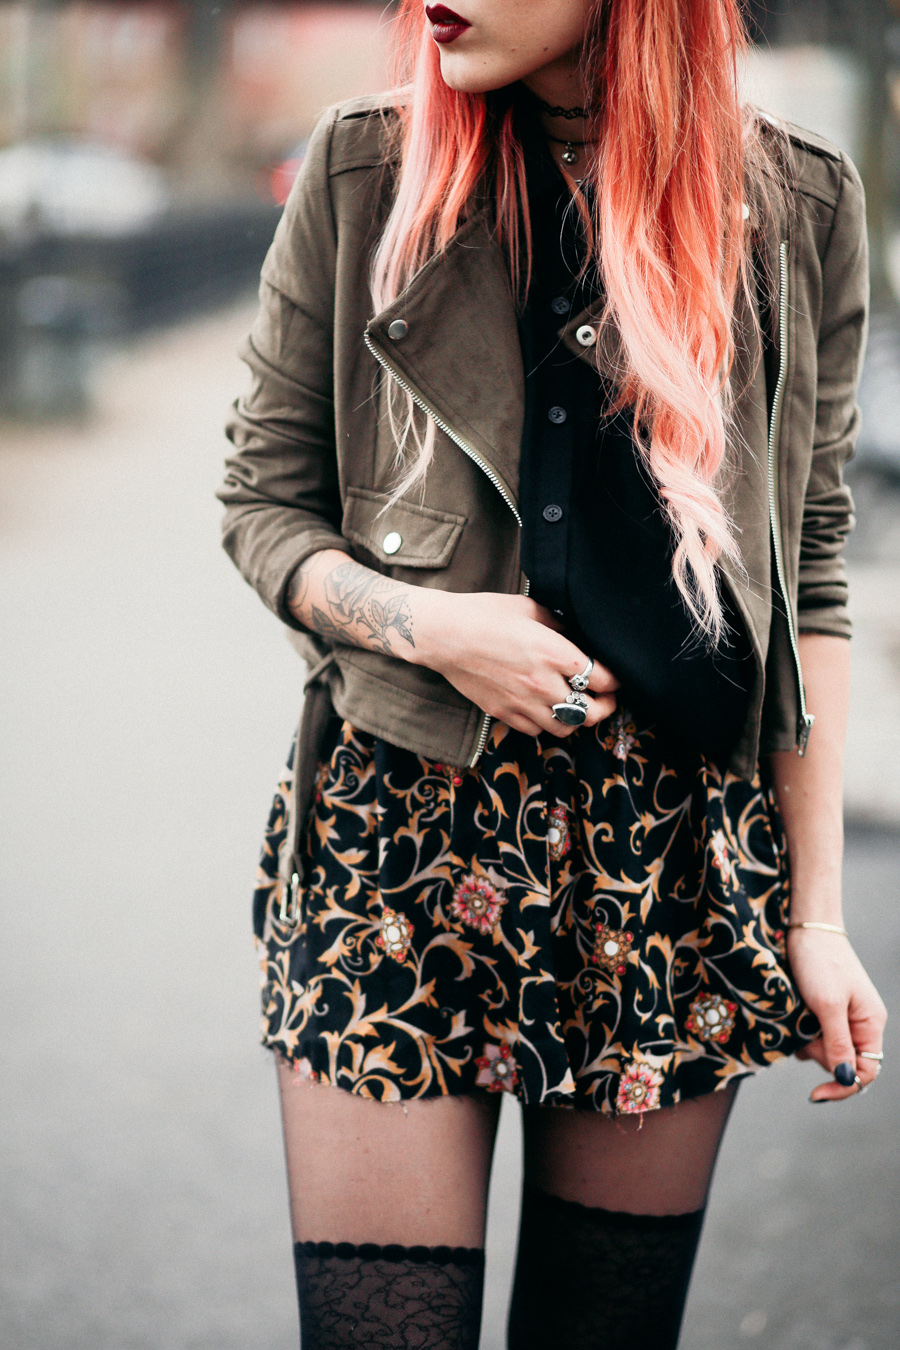 Lua wearing Missguided suede biker jacket and floral mini skirt